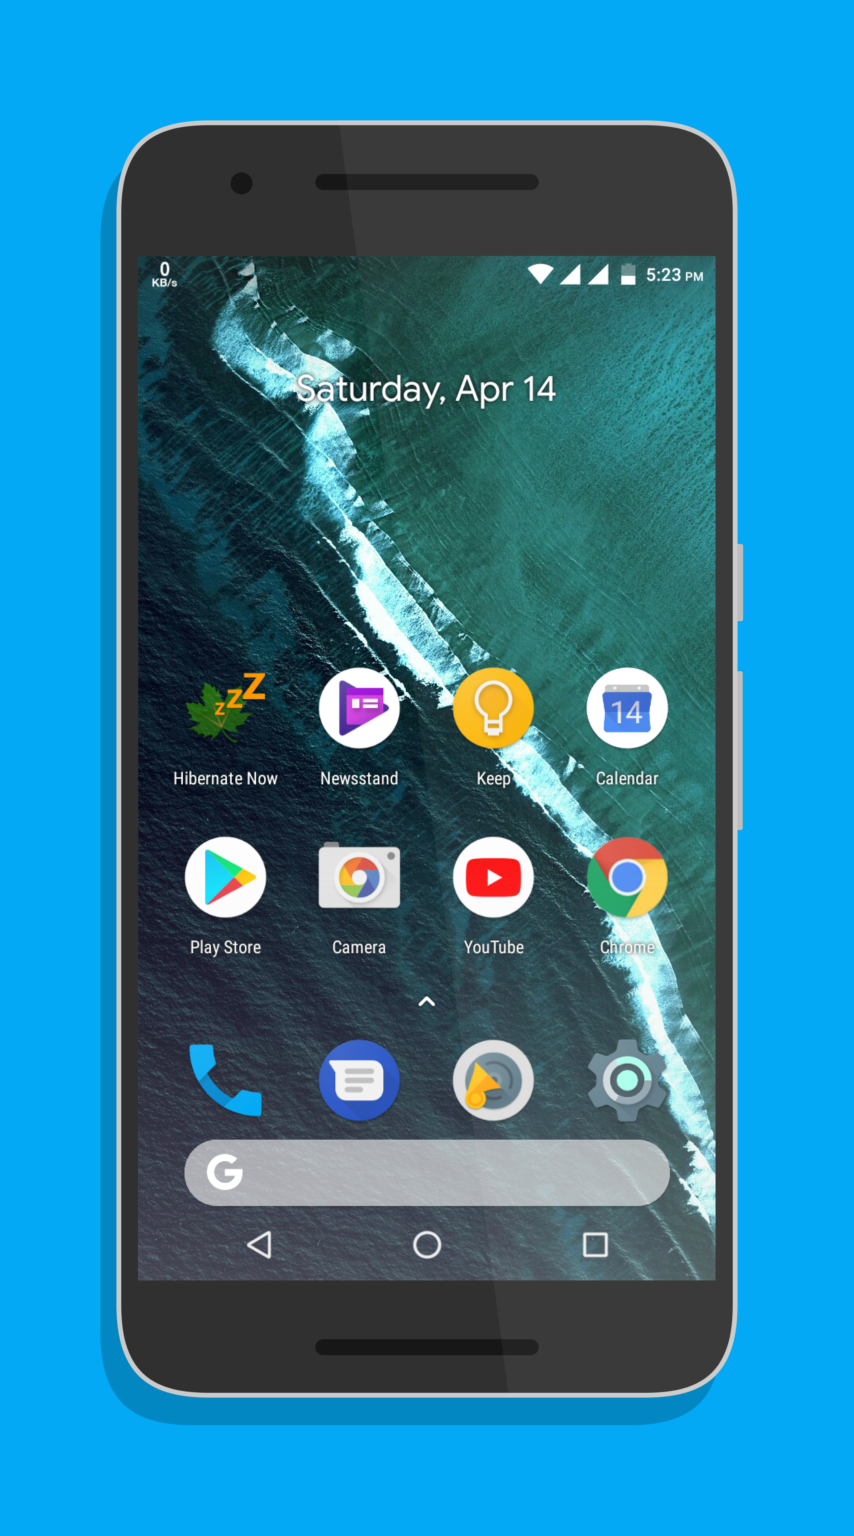 [AOSP] [Android One] Google AOSP Marshmallow ROM For Symphony i10 [MT6580] [3.18.19+]